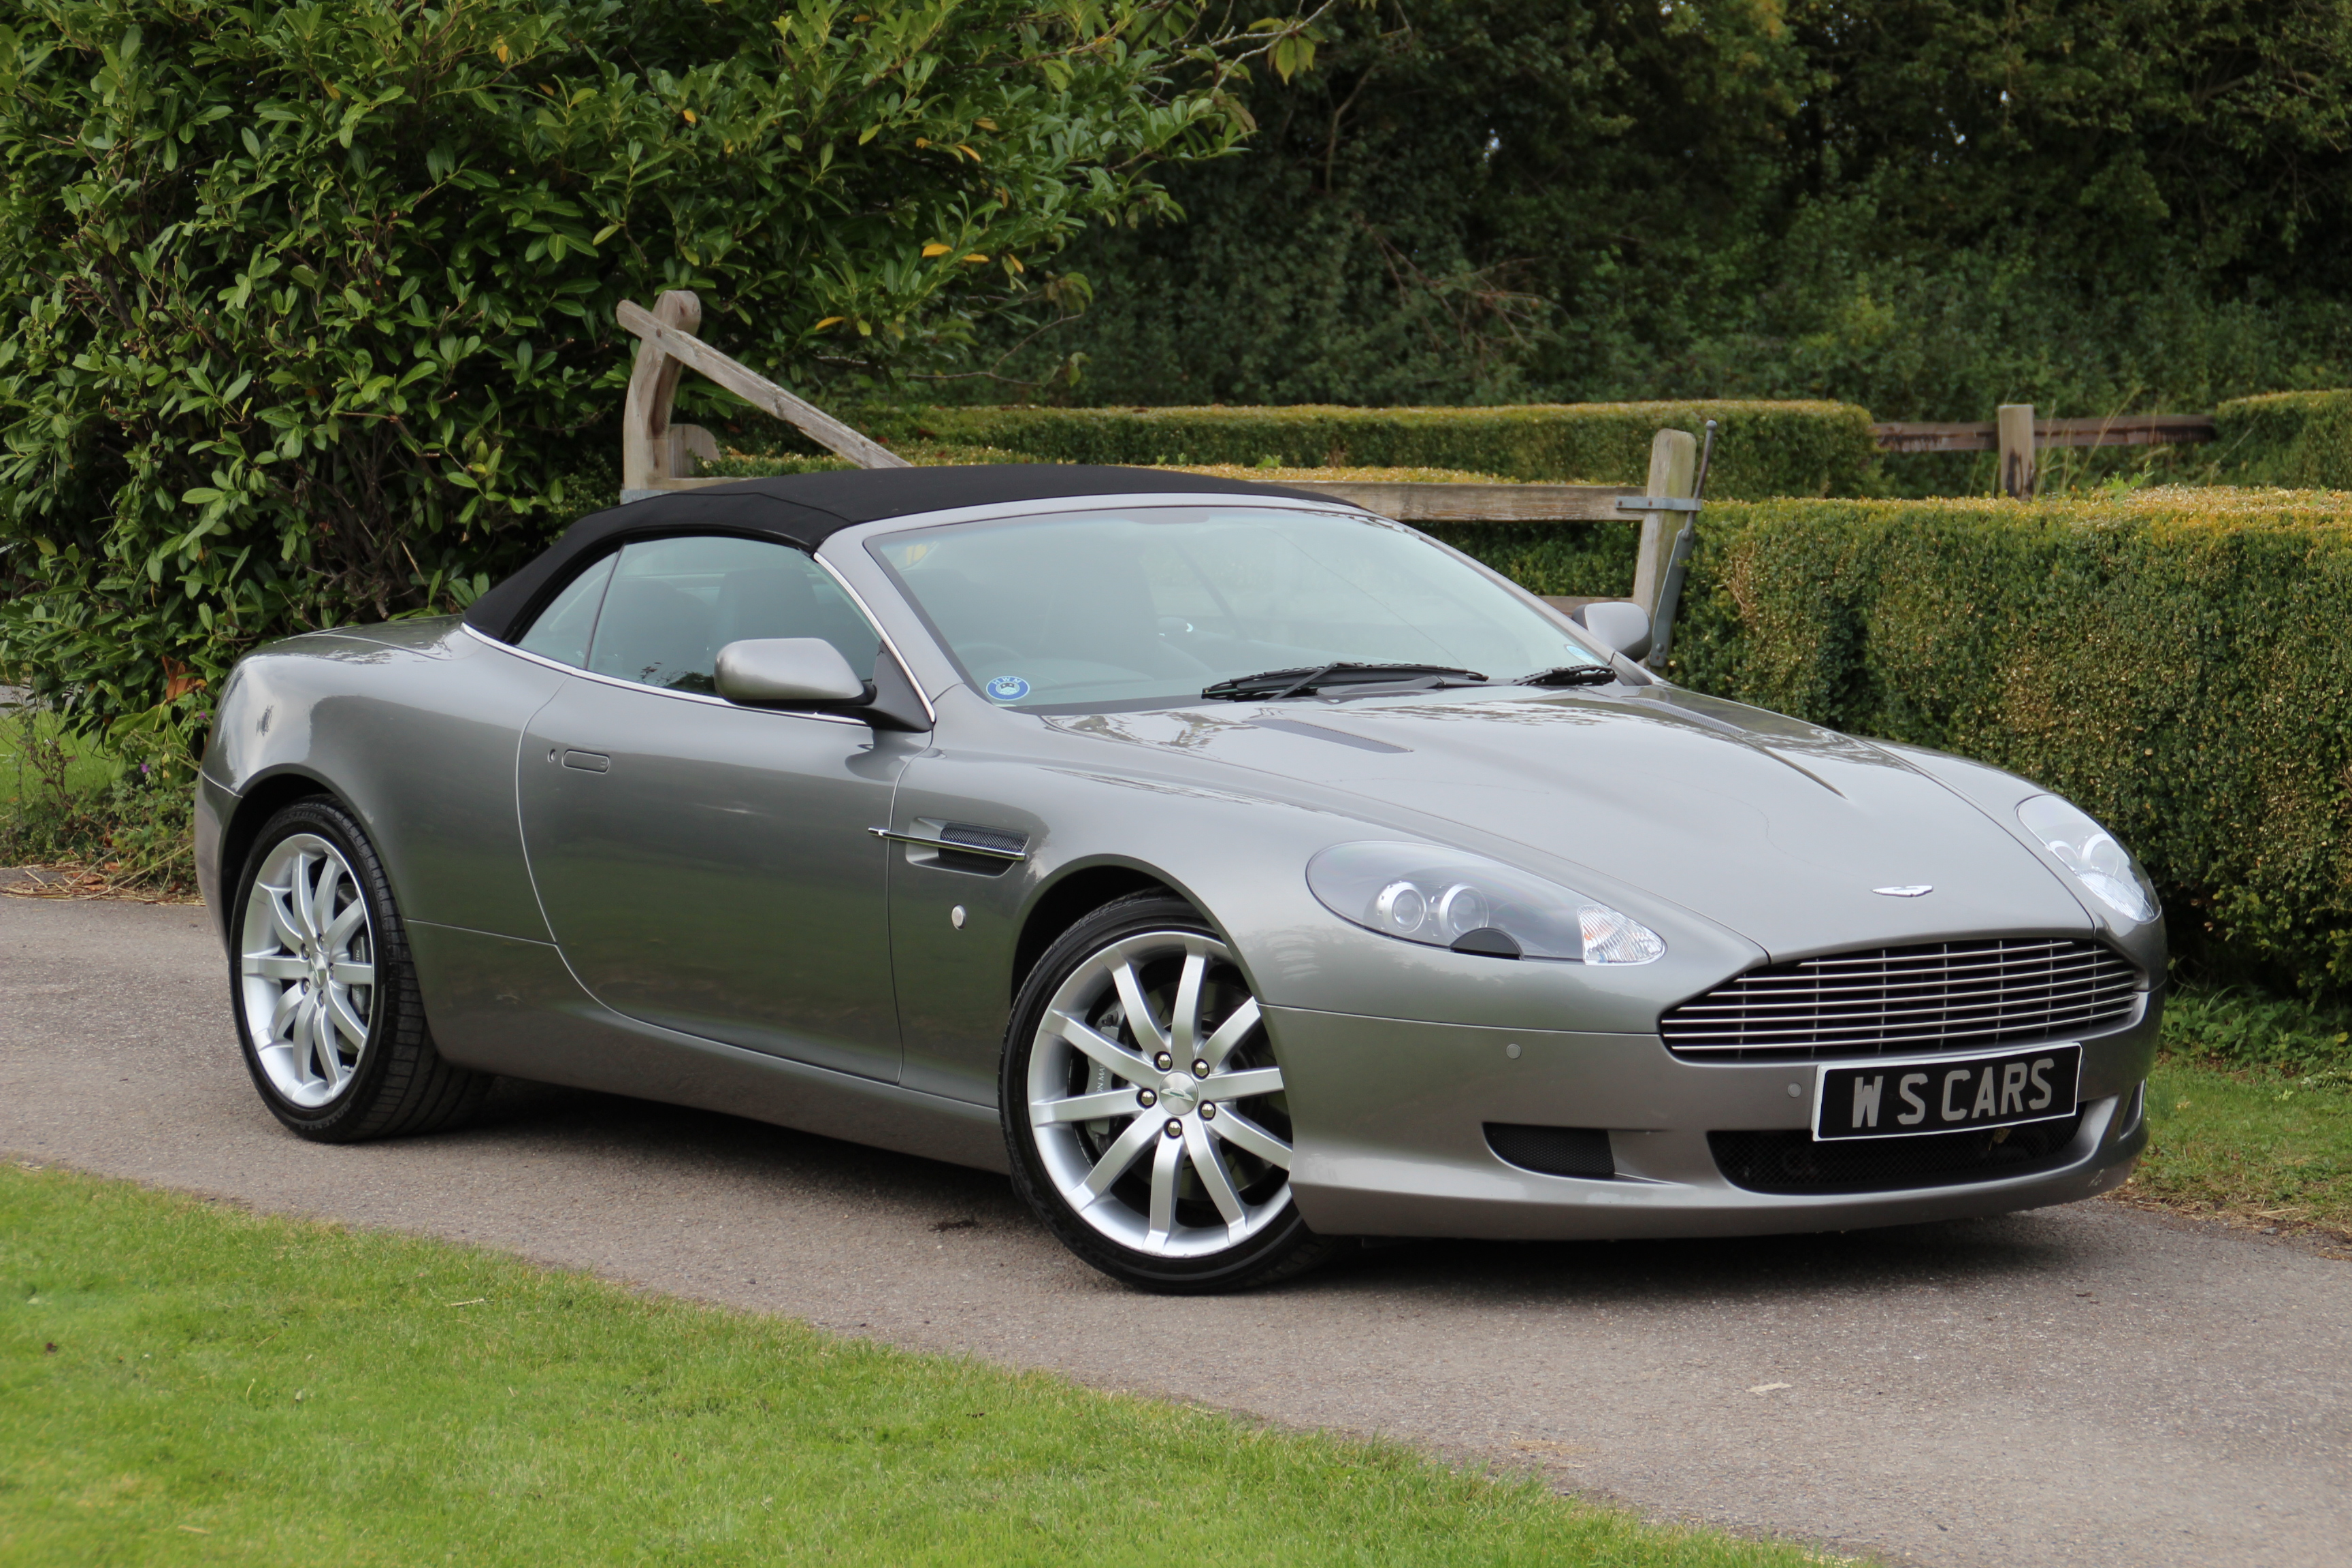 aston martin db9 voltane 2007 images